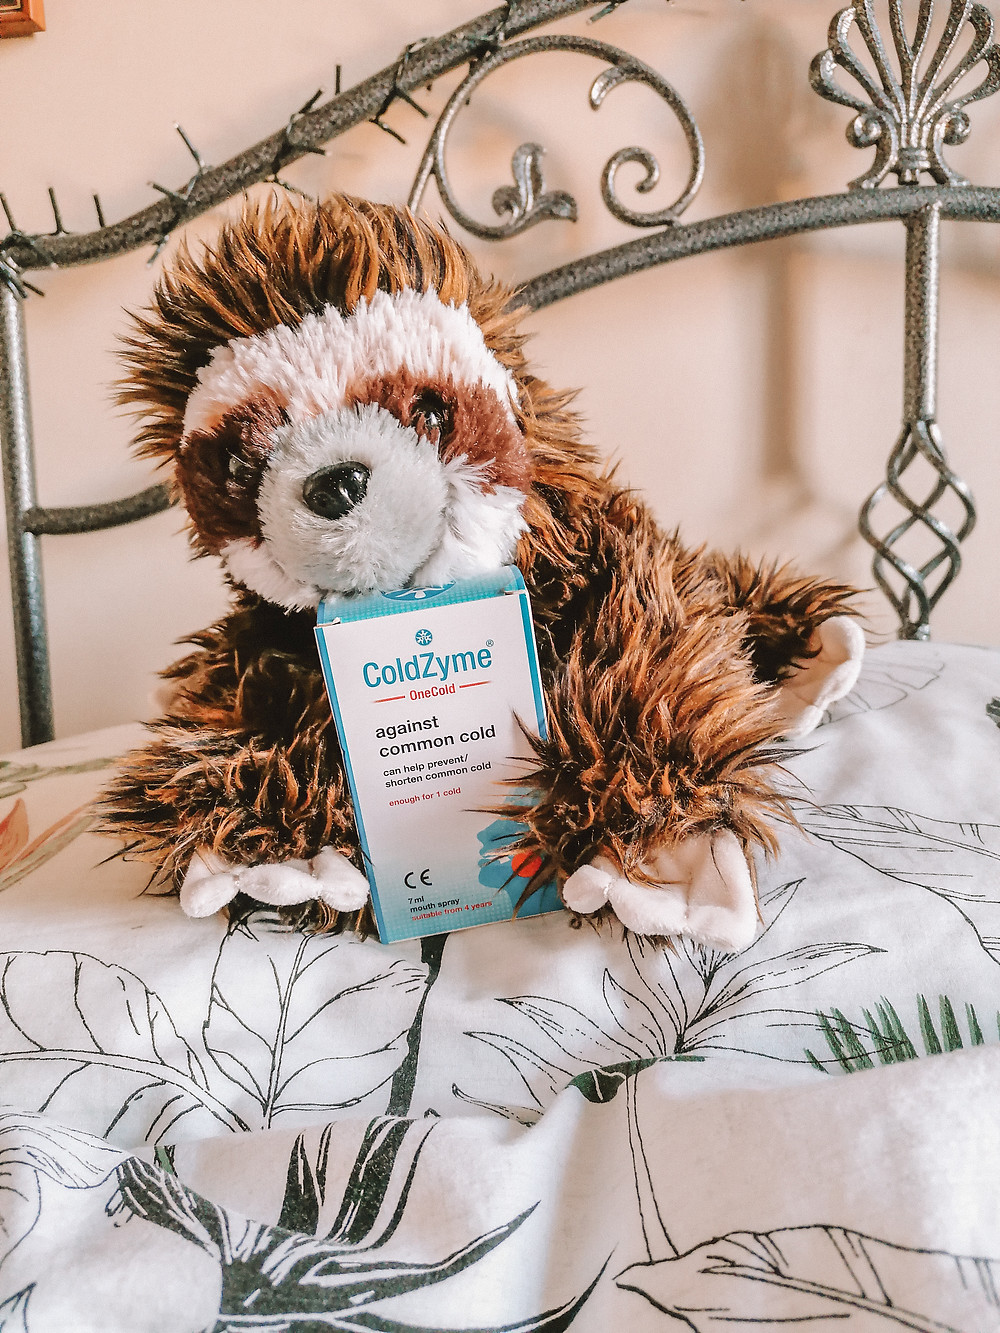 A stuffed toy sloth on a bed holding a box of ColdZyme cold spray